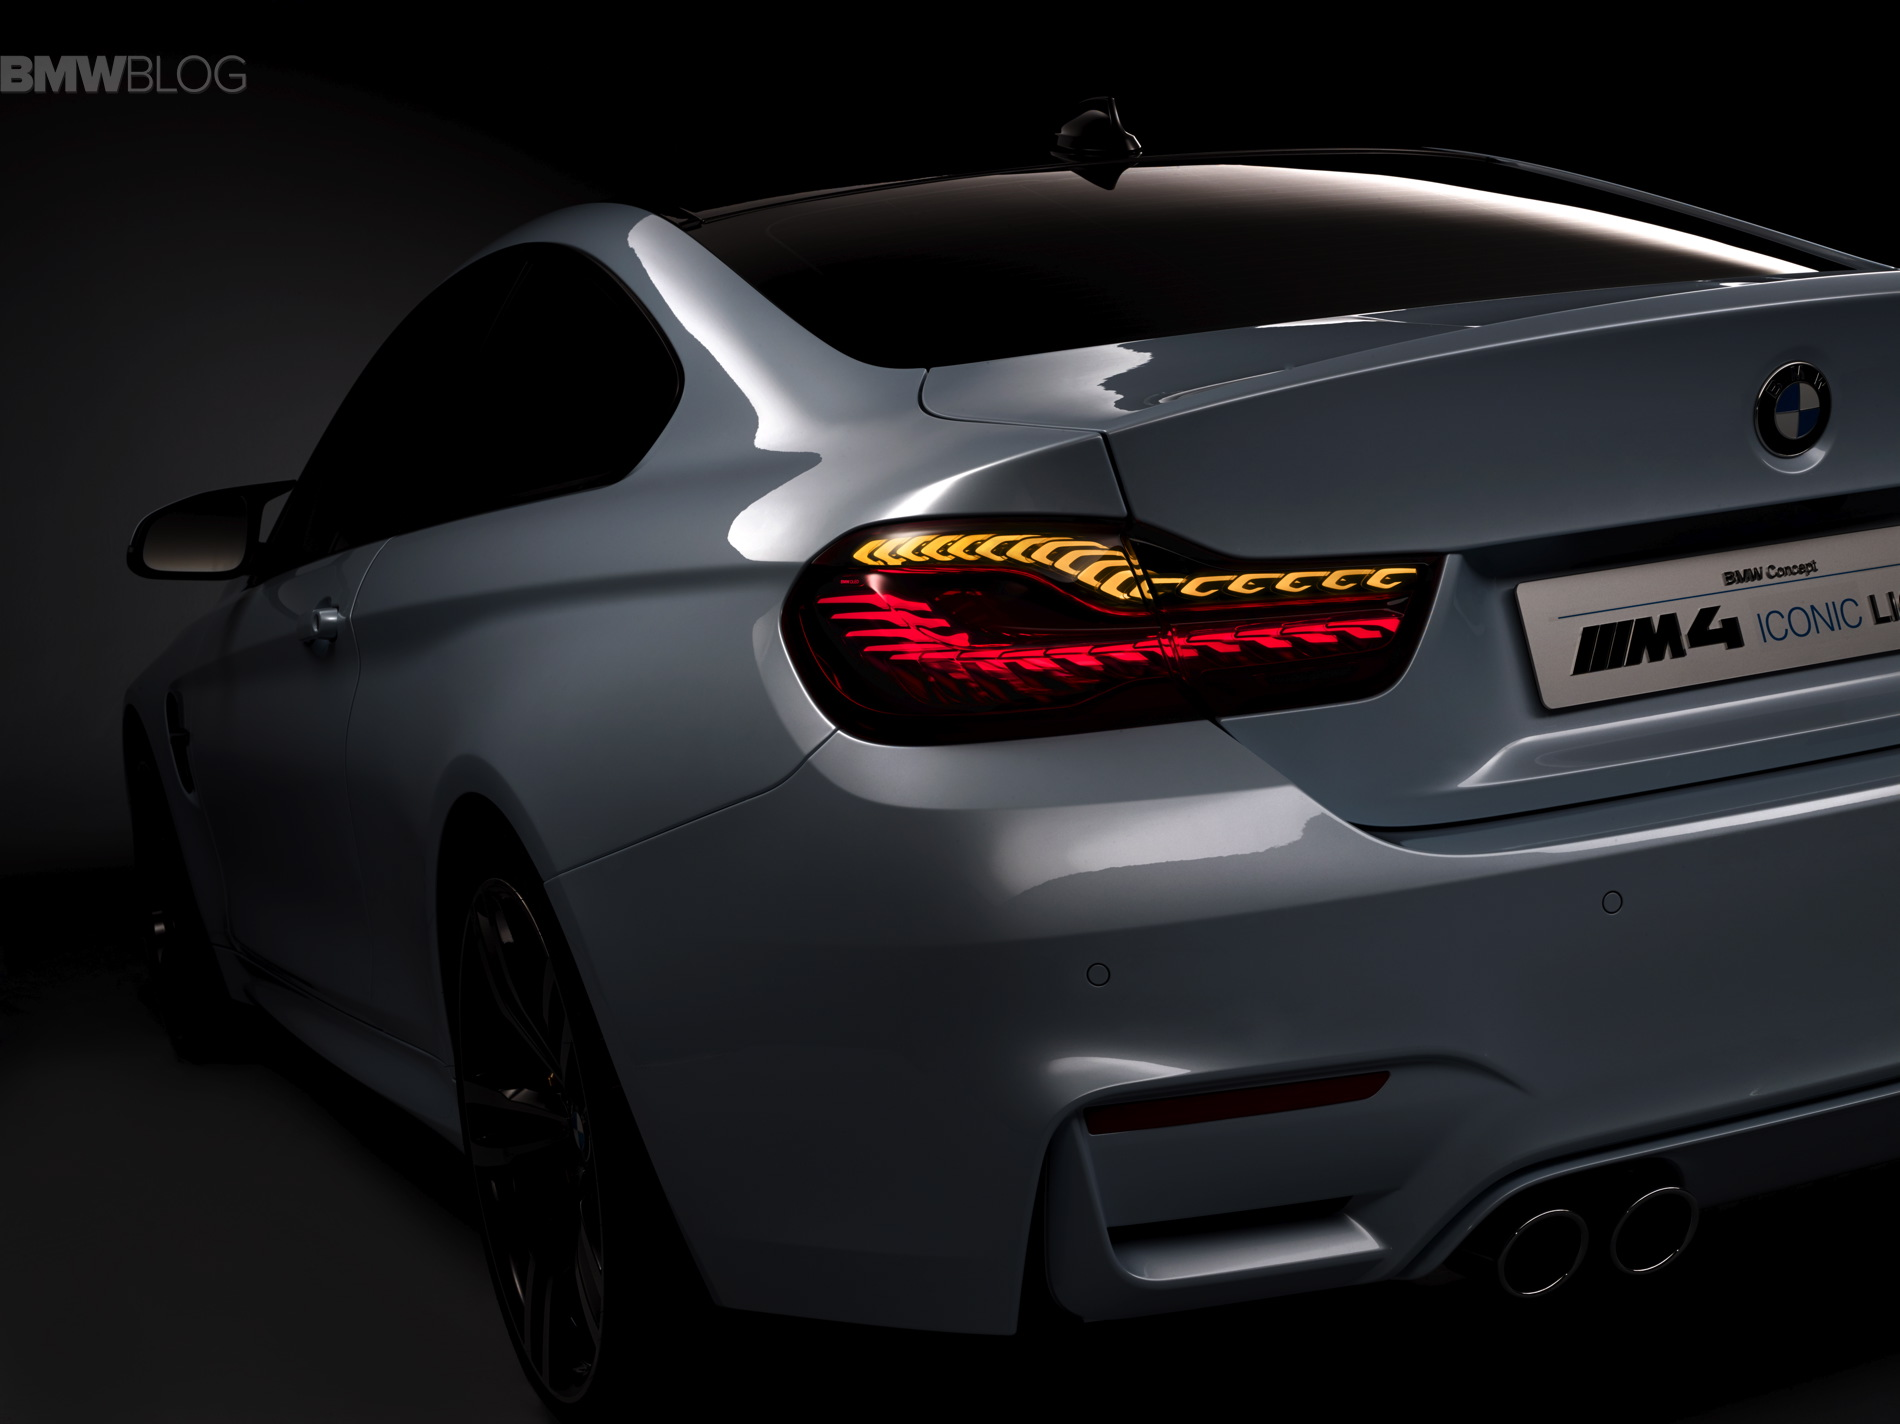 BMW M4 Concept Iconic Lights images 08